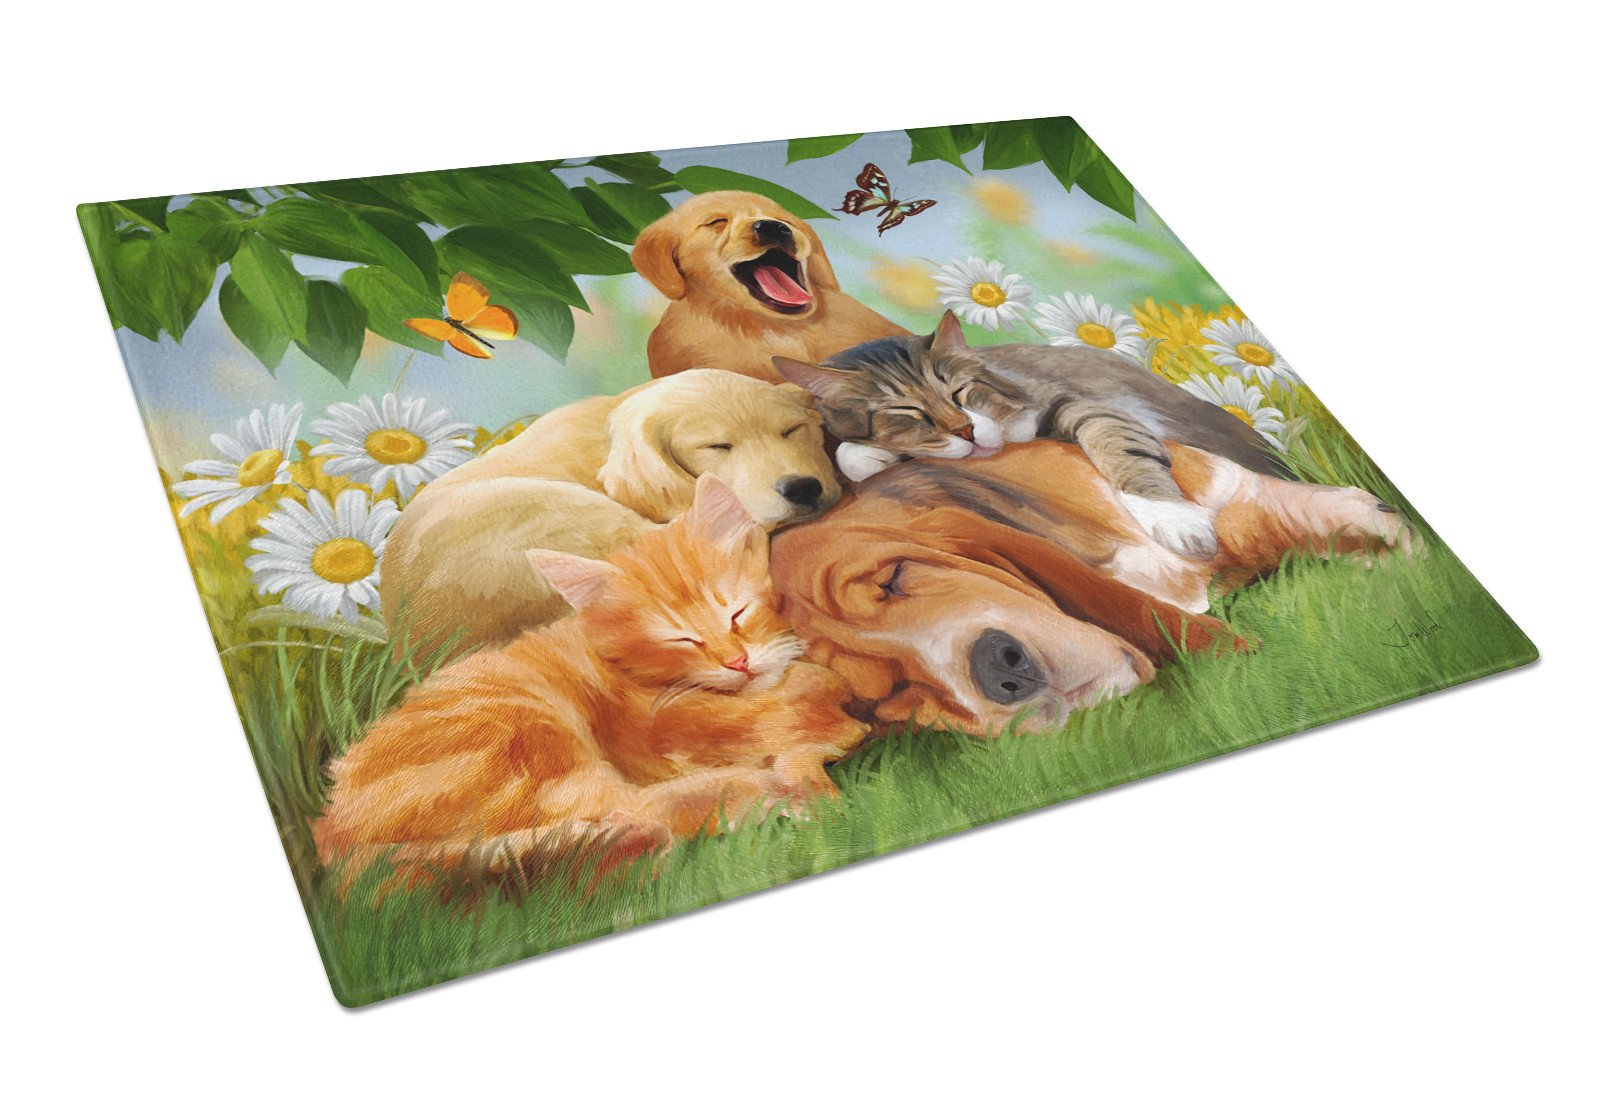 Golden Retriever, Labrador and Basset Hound Sleepy Heads Glass Cutting Board Large PTW2049LCB by Caroline's Treasures